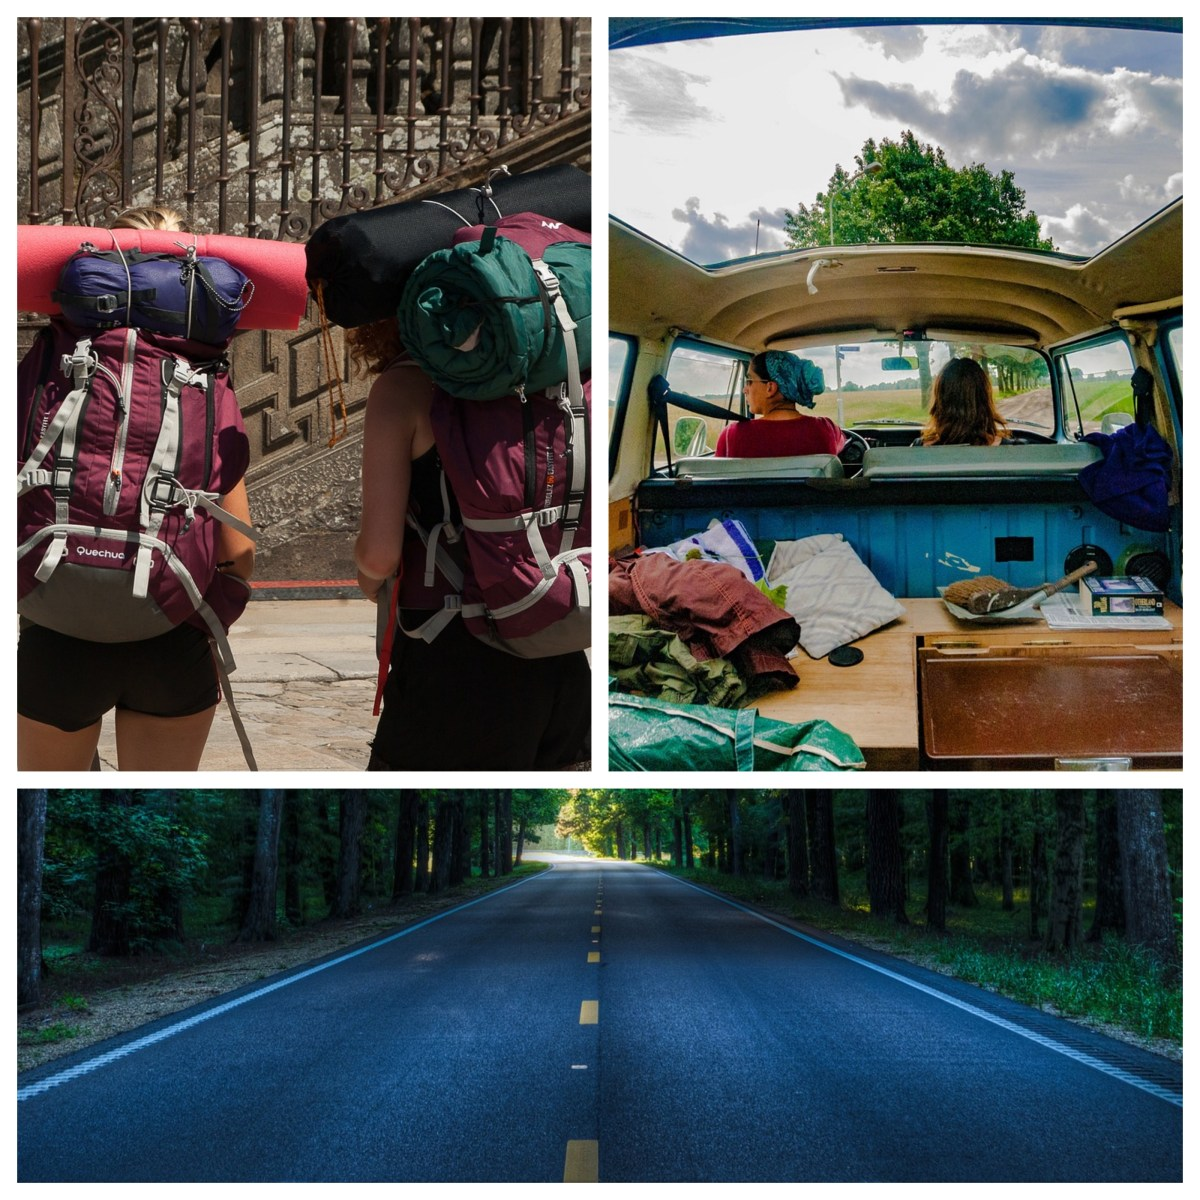 Roadtripping vs Backpacking